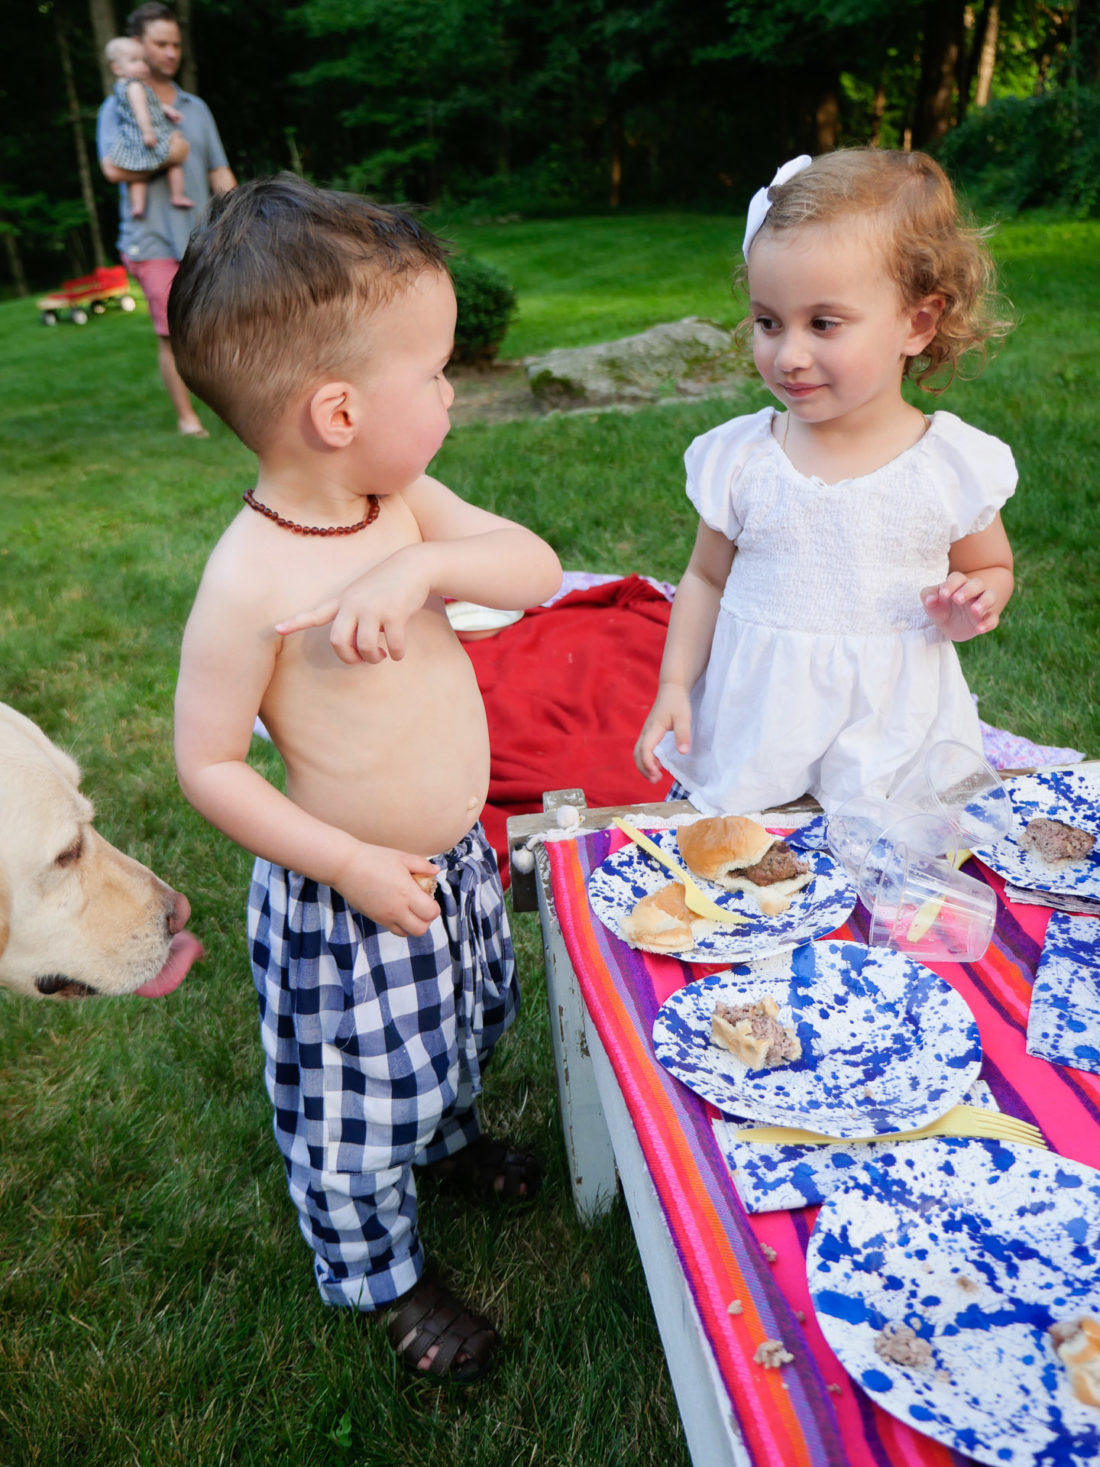 Major Martino wears white and blue checked pants and stands with a little girl on the fourth of july in Connecticut